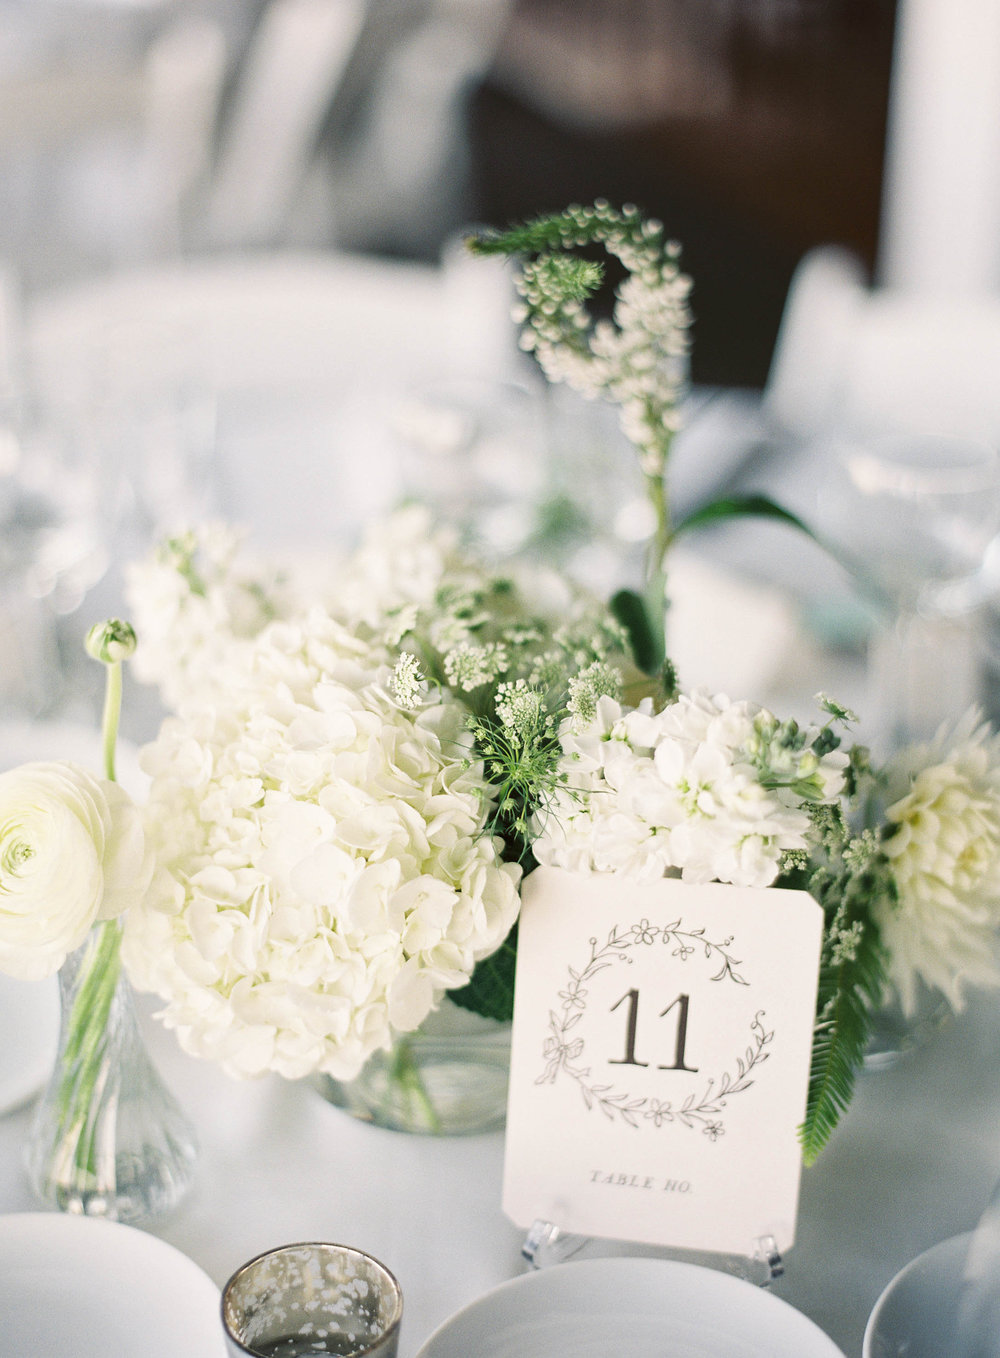 White hydrangea multiple centerpieces